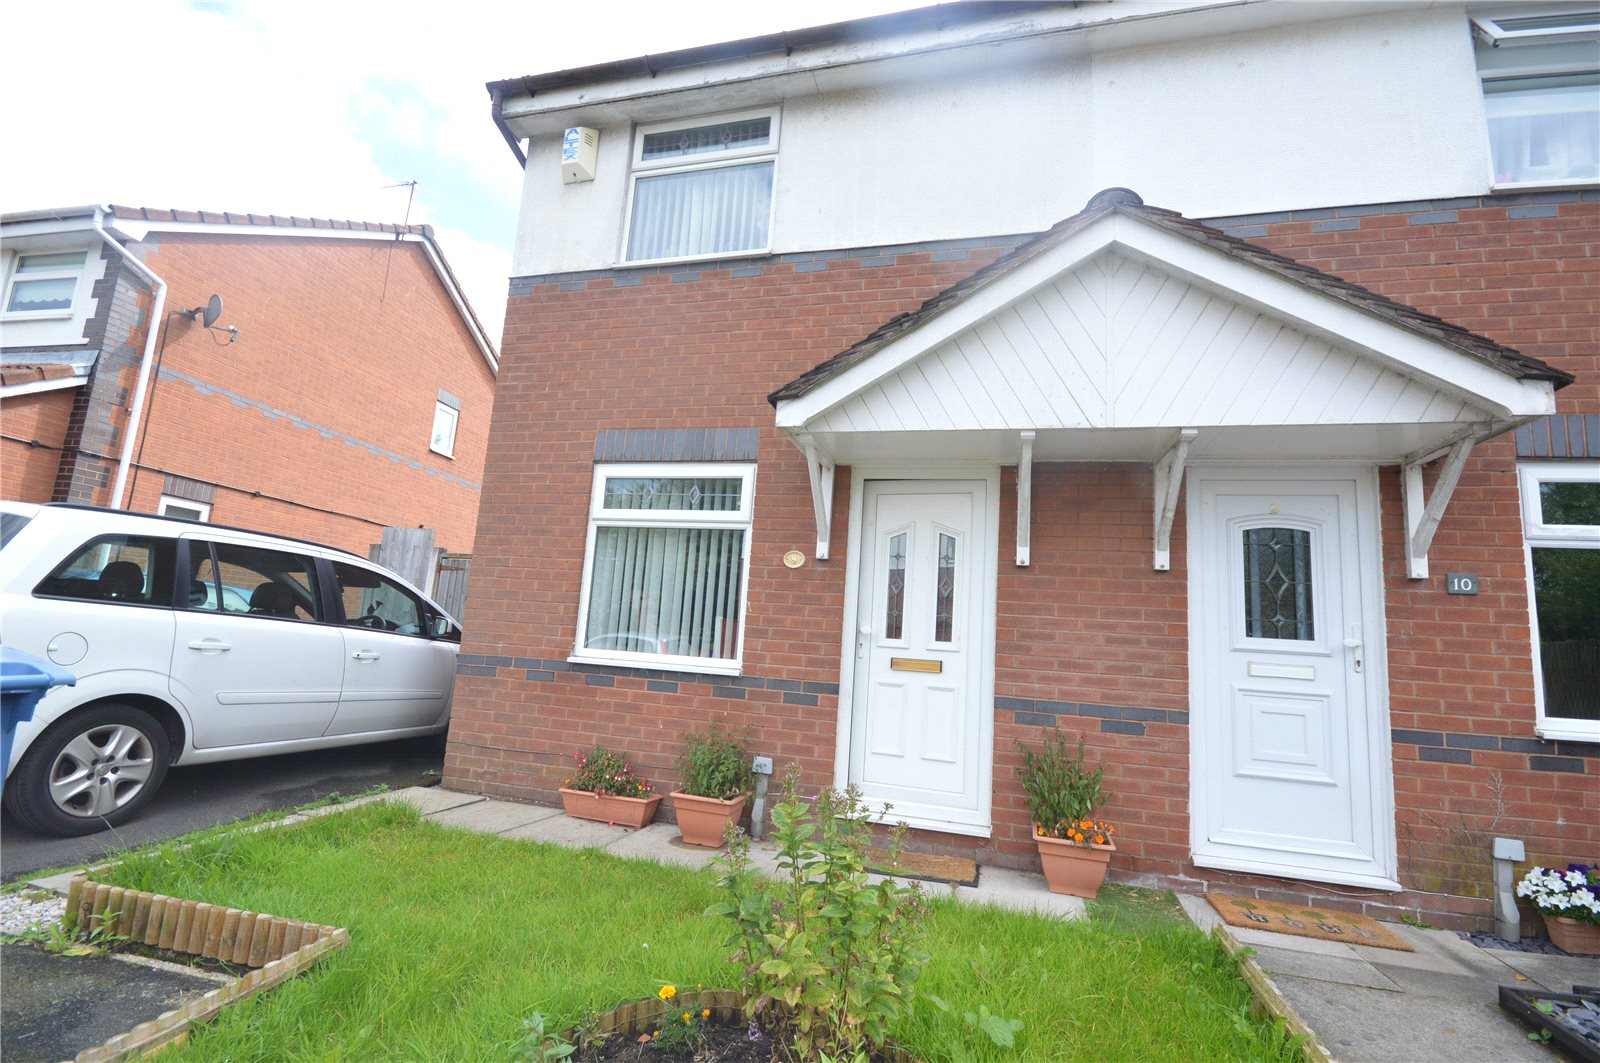 2 Bedrooms Semi Detached House for sale in Tedburn Close, Gateacre, Liverpool, L25